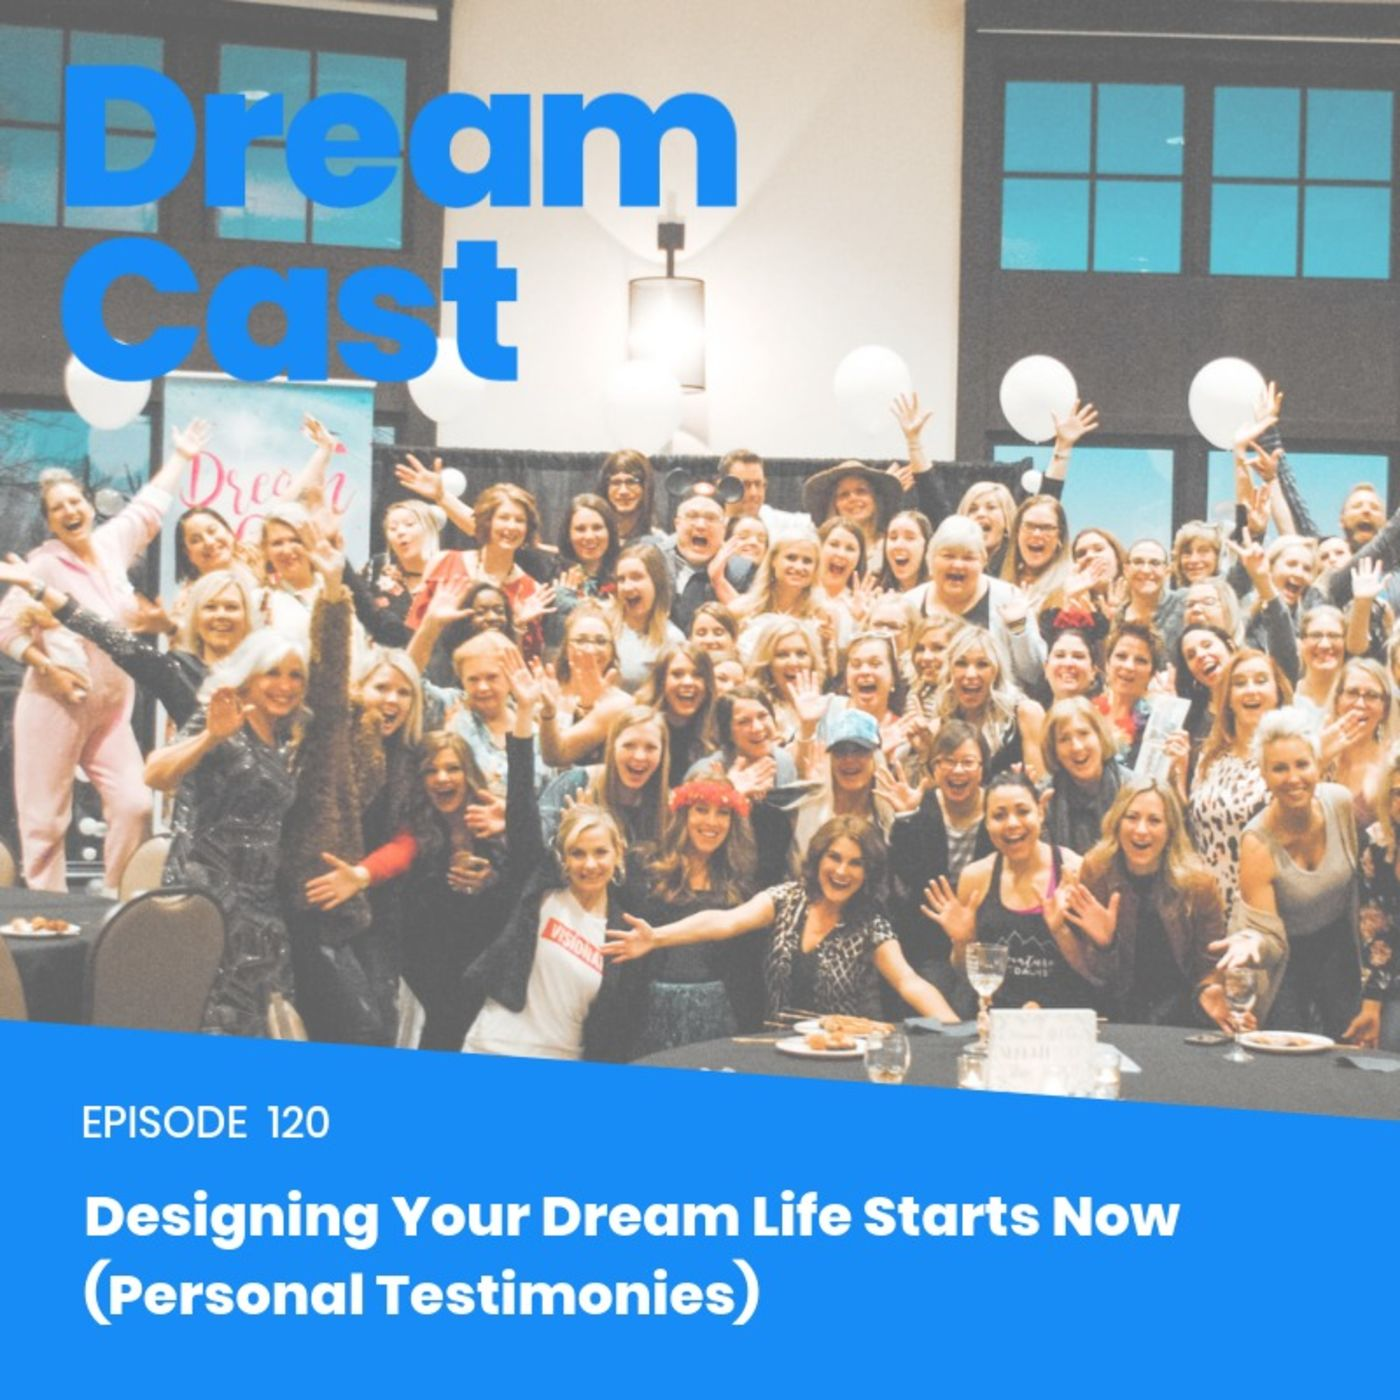 Episode 120 - Designing Your Dream Life Starts Now (Personal Testimonies)